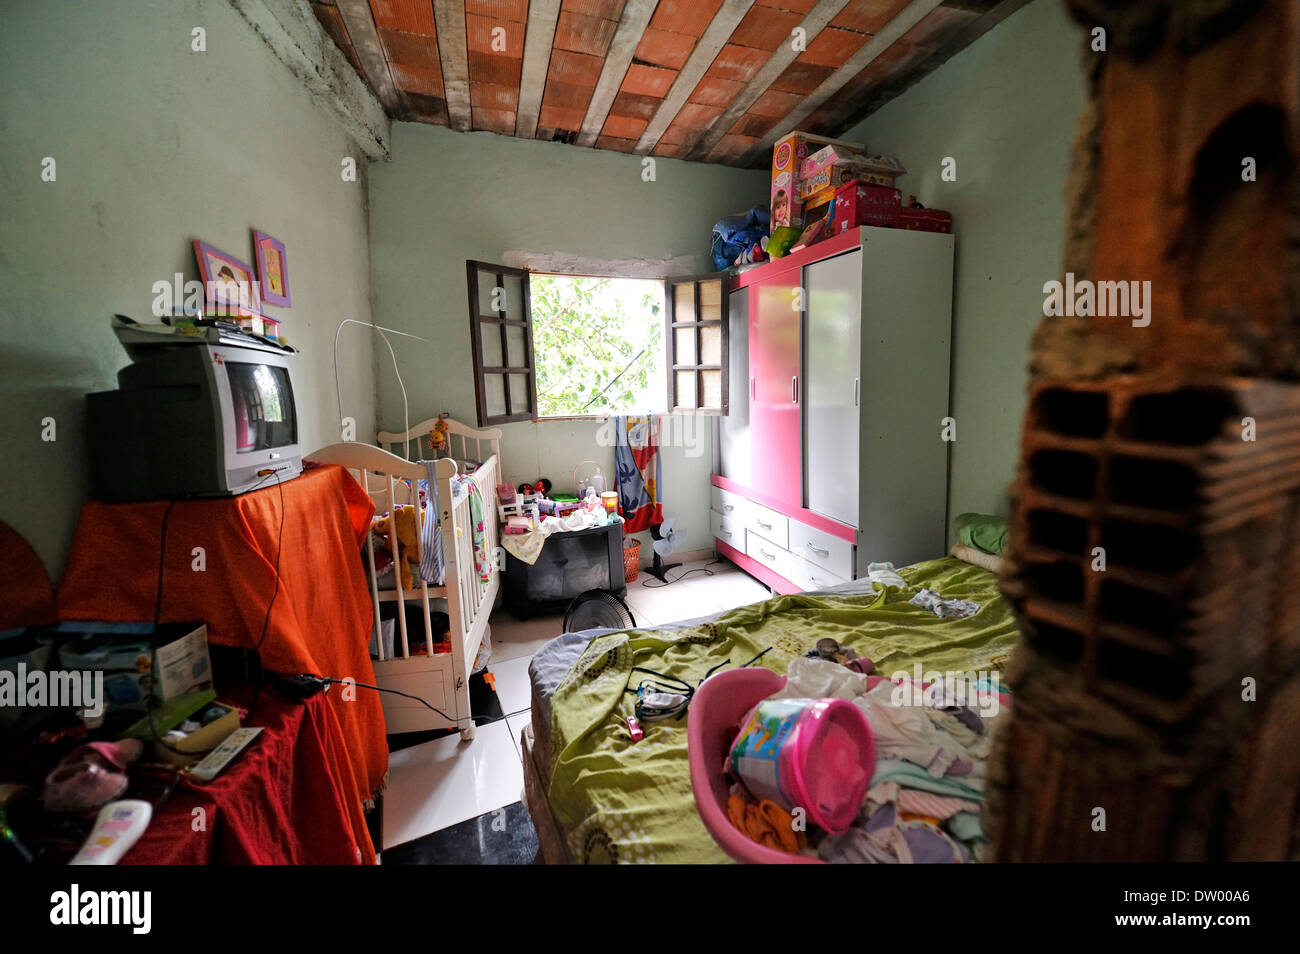 Brazilian Homes Interior View Of A Home Bedroom In The Slums Favela